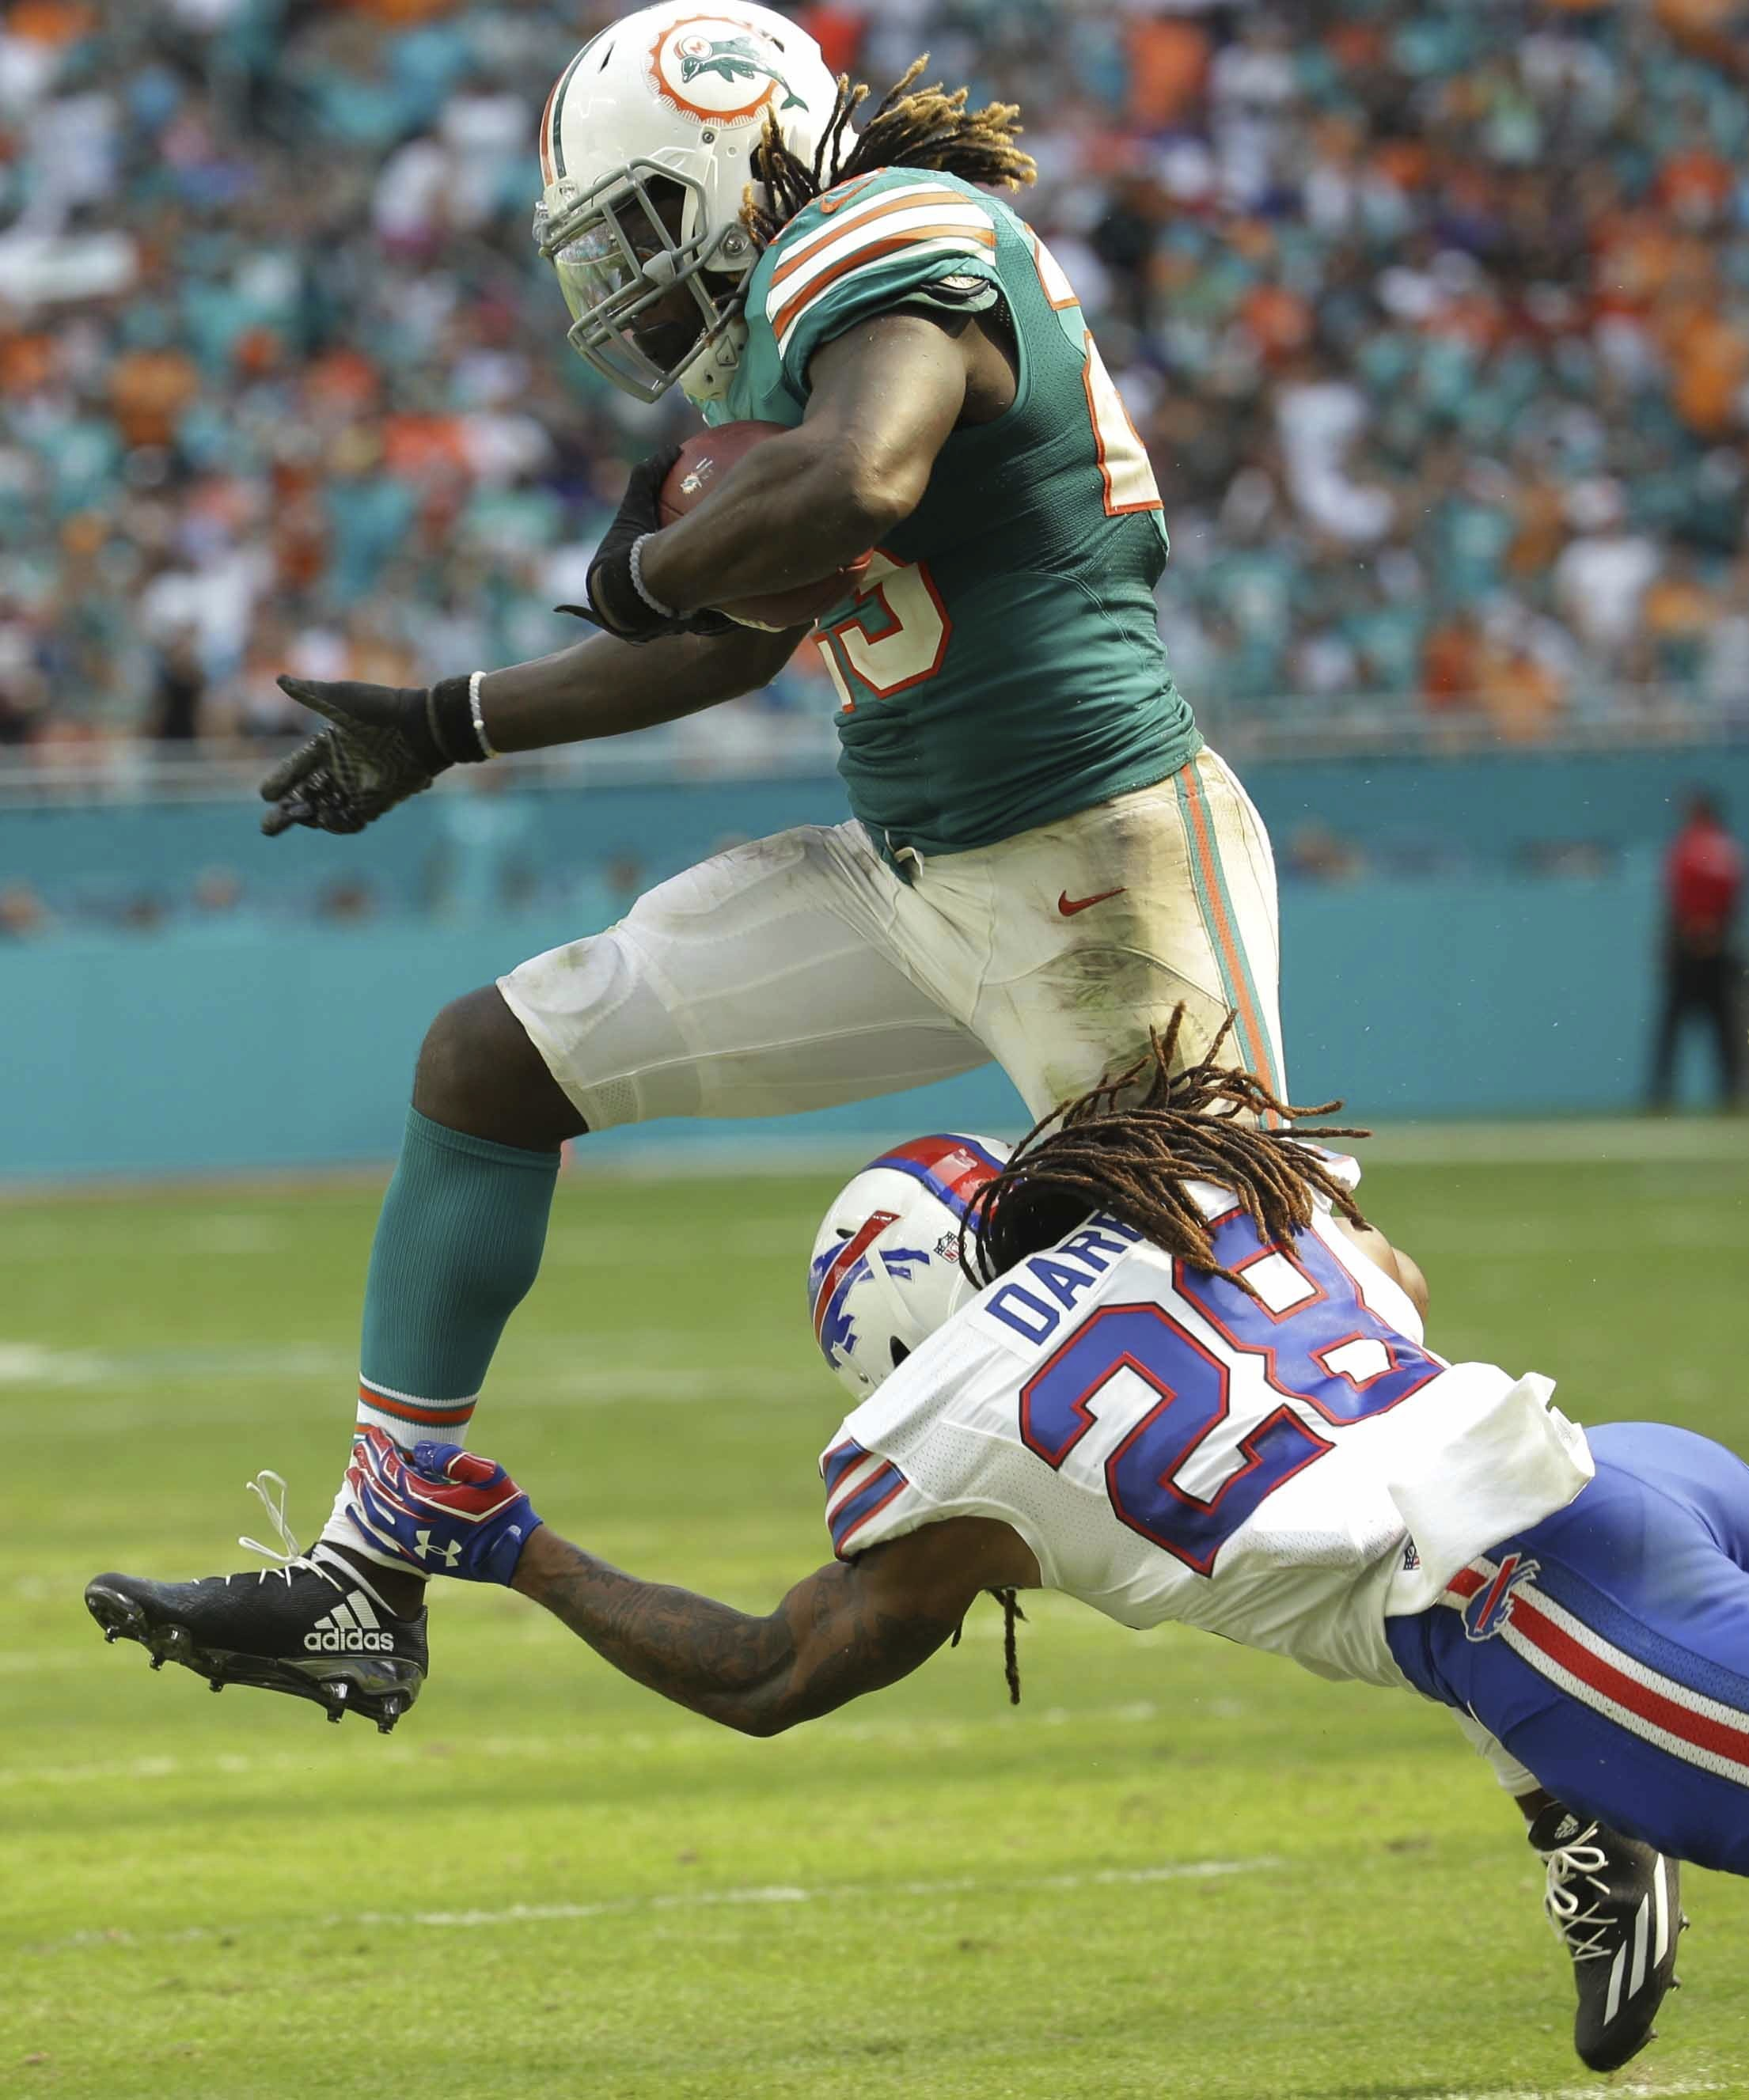 Buffalo Bills cornerback Ronald Darby (28) attempts to tackle Miami Dolphins running back Jay Ajayi (23), during the second half of an NFL football game, Sunday, Oct. 23, 2016, in Miami Gardens, Fla. (AP Photo/Lynne Sladky)